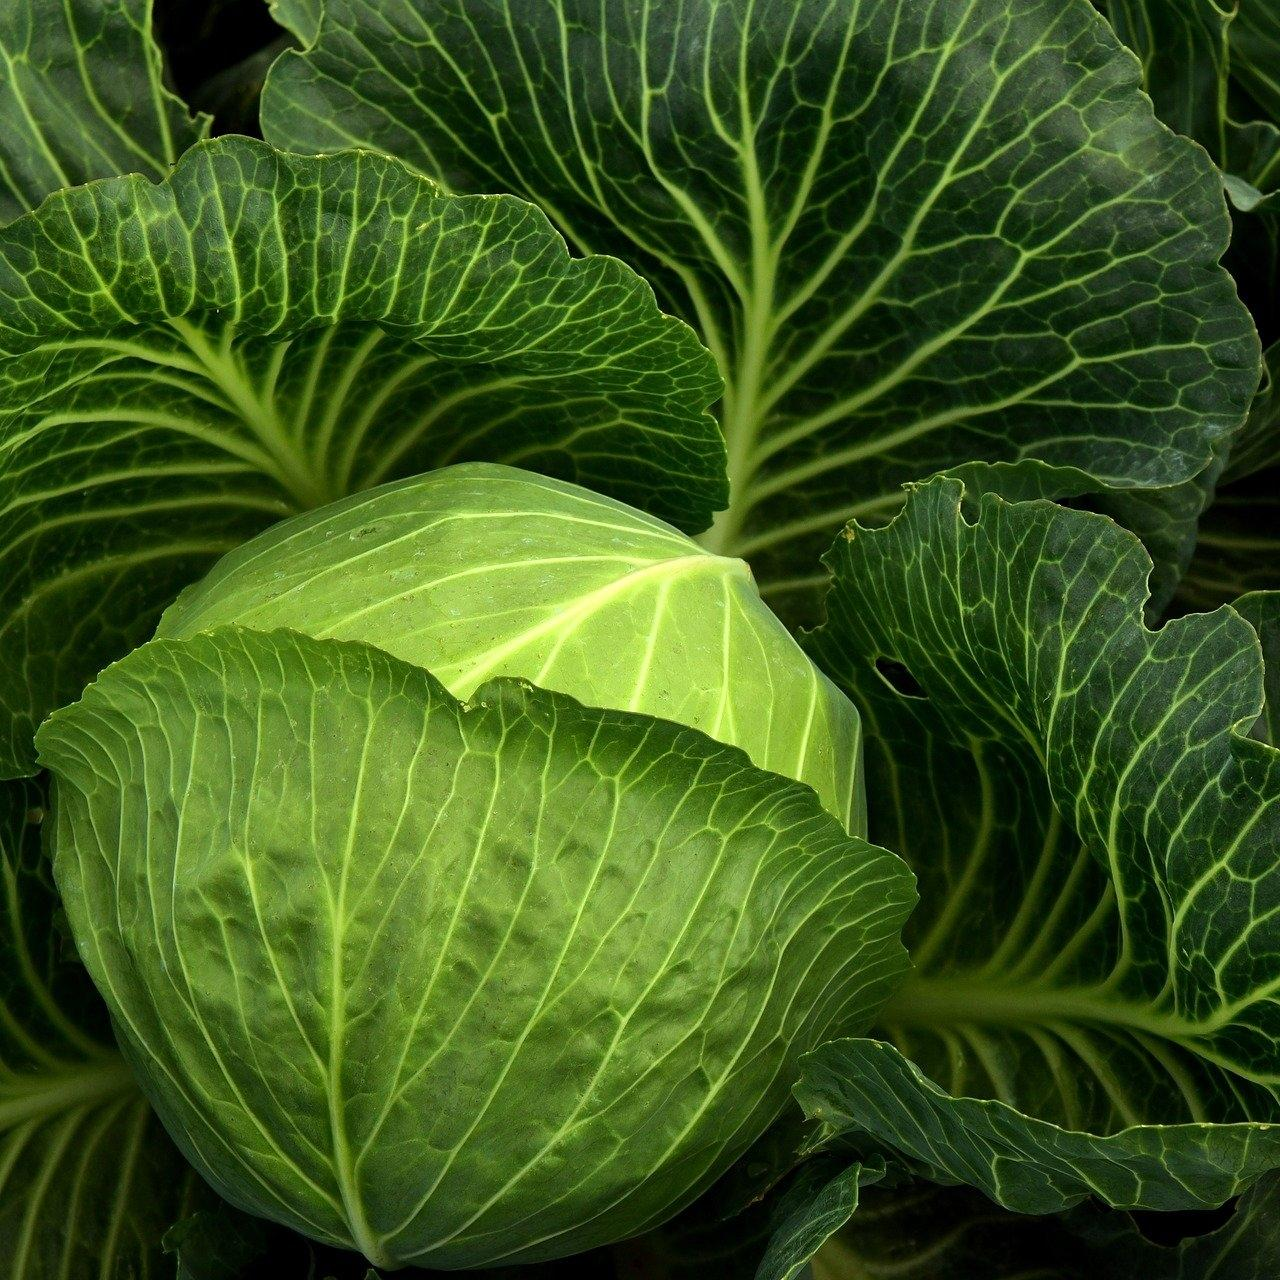 A green cabbage